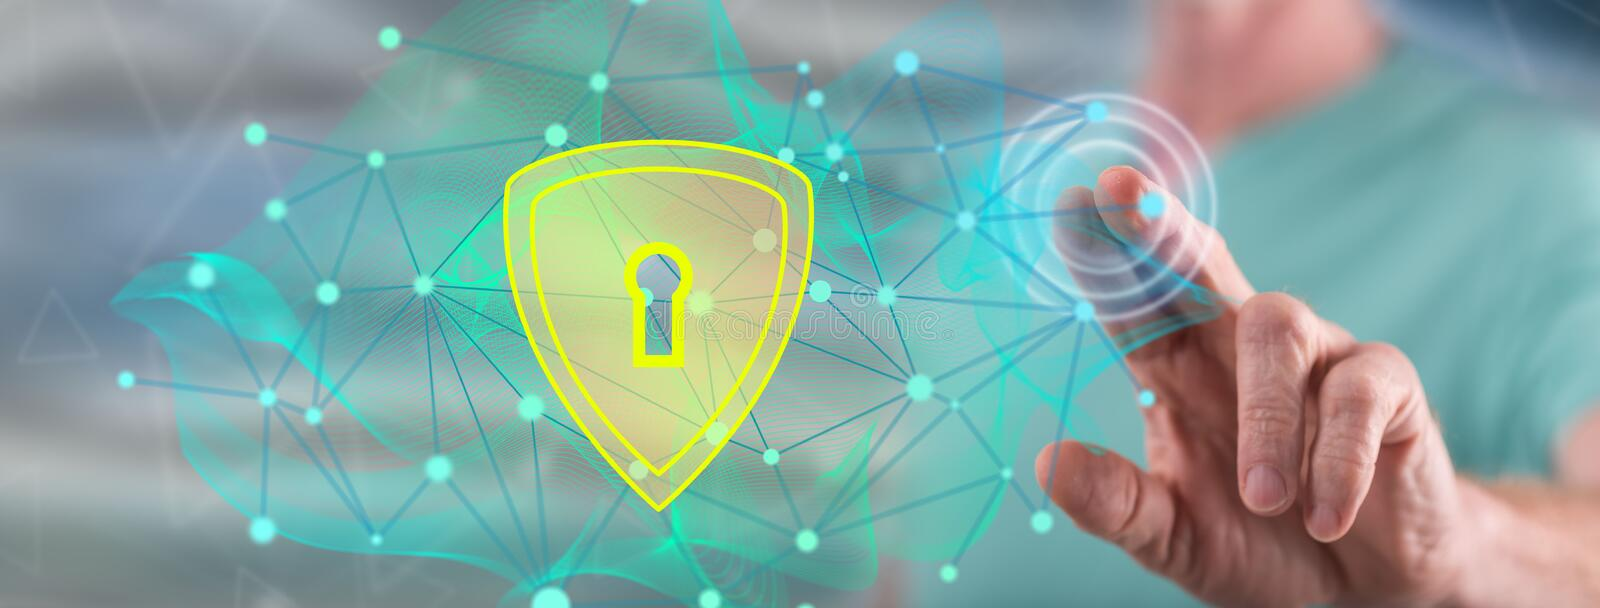 Man touching a data security concept royalty free stock photography